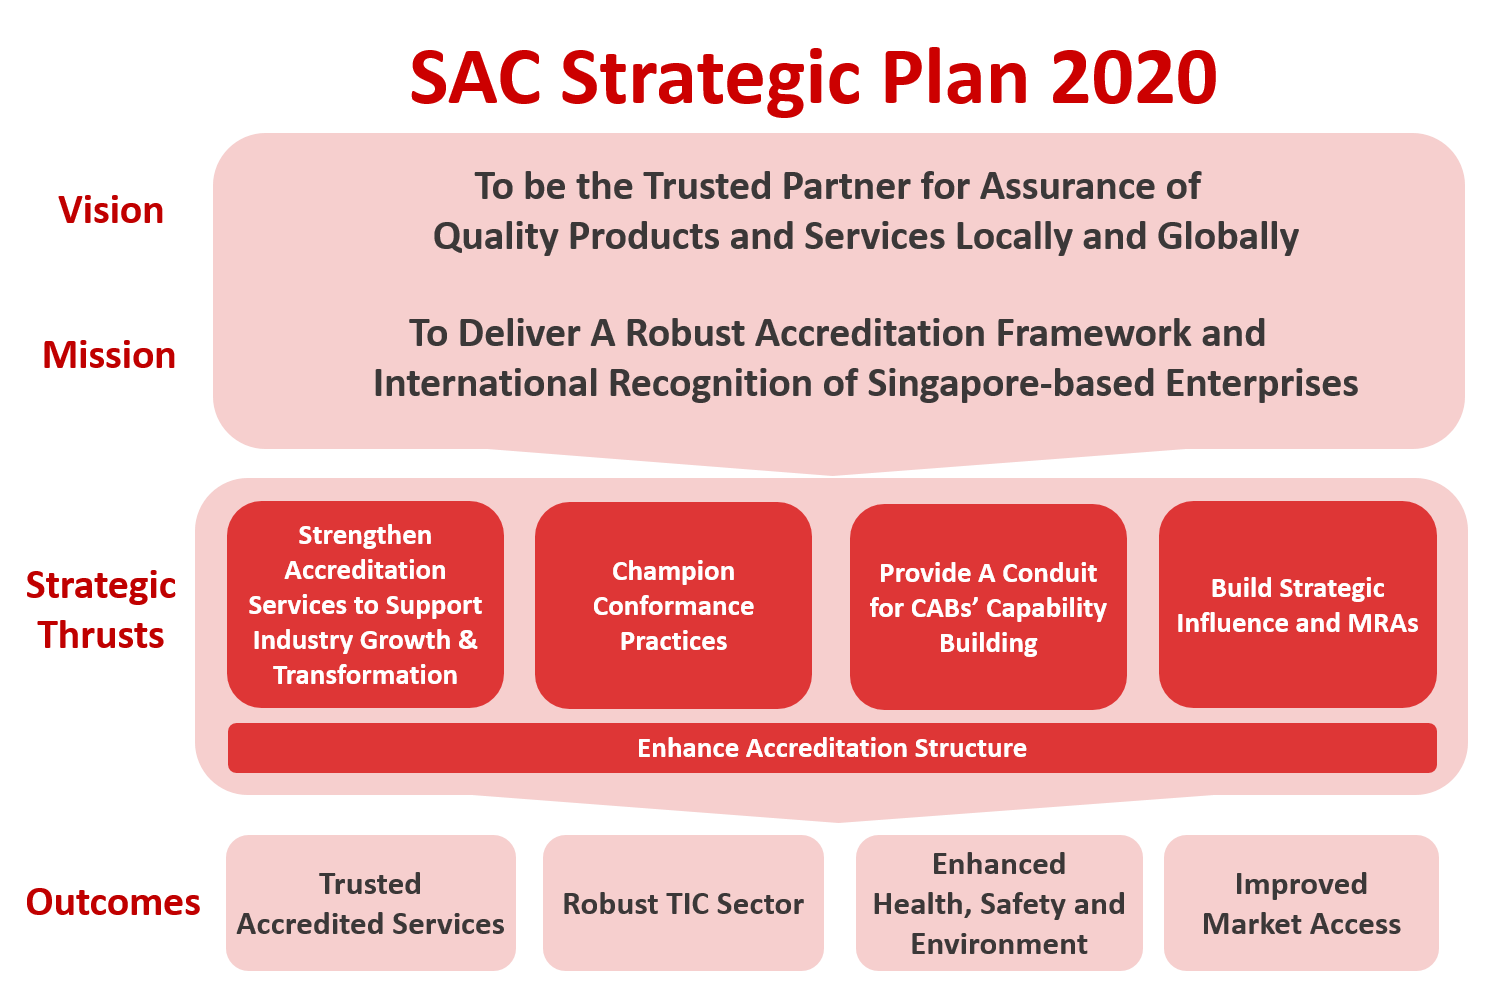 SAC Strategic Plan 2020